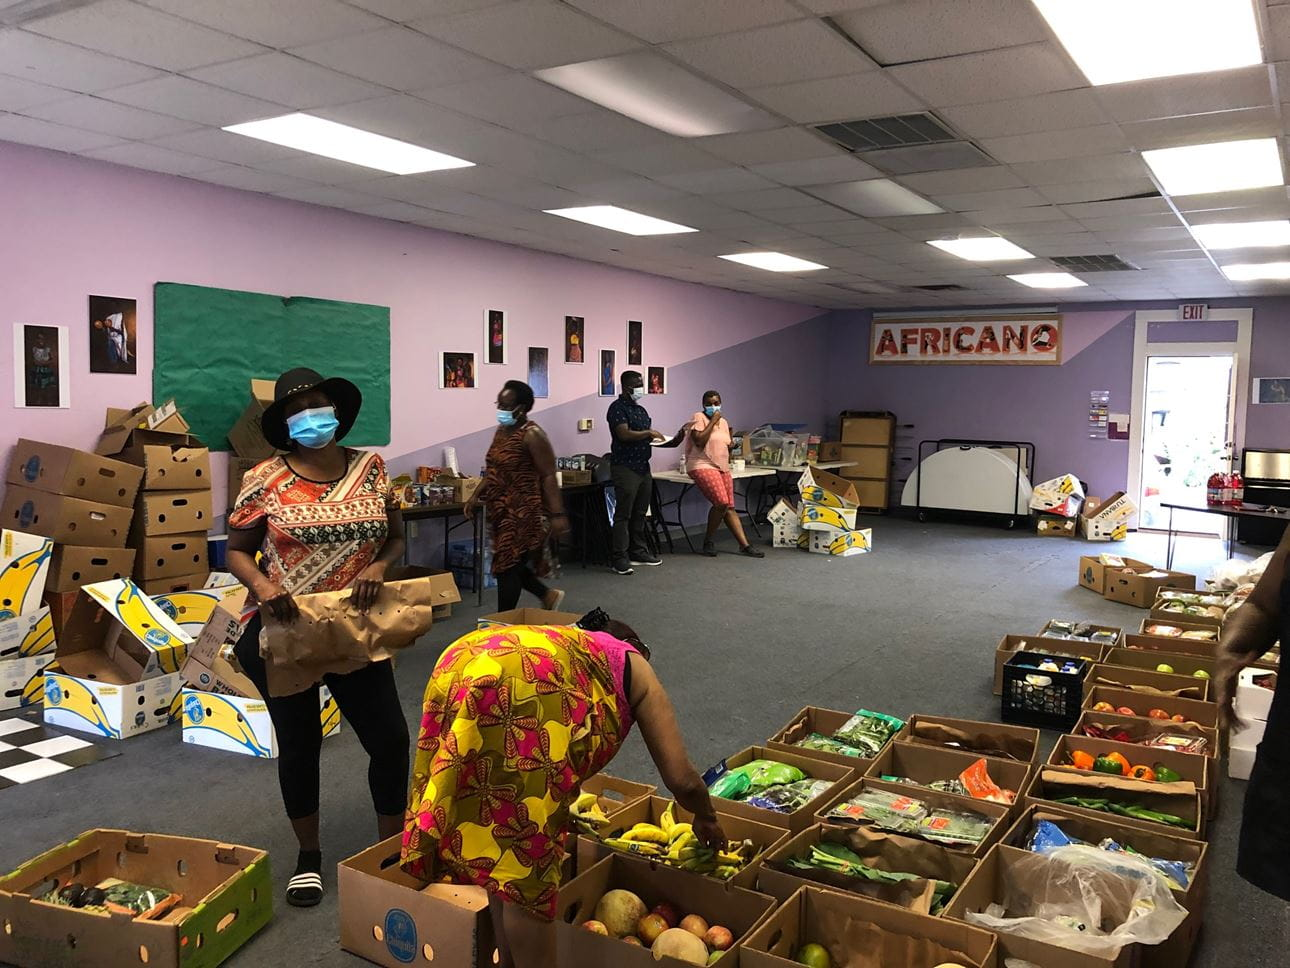 Women at Africano Waltham standing among boxes full of produce for a food drive.